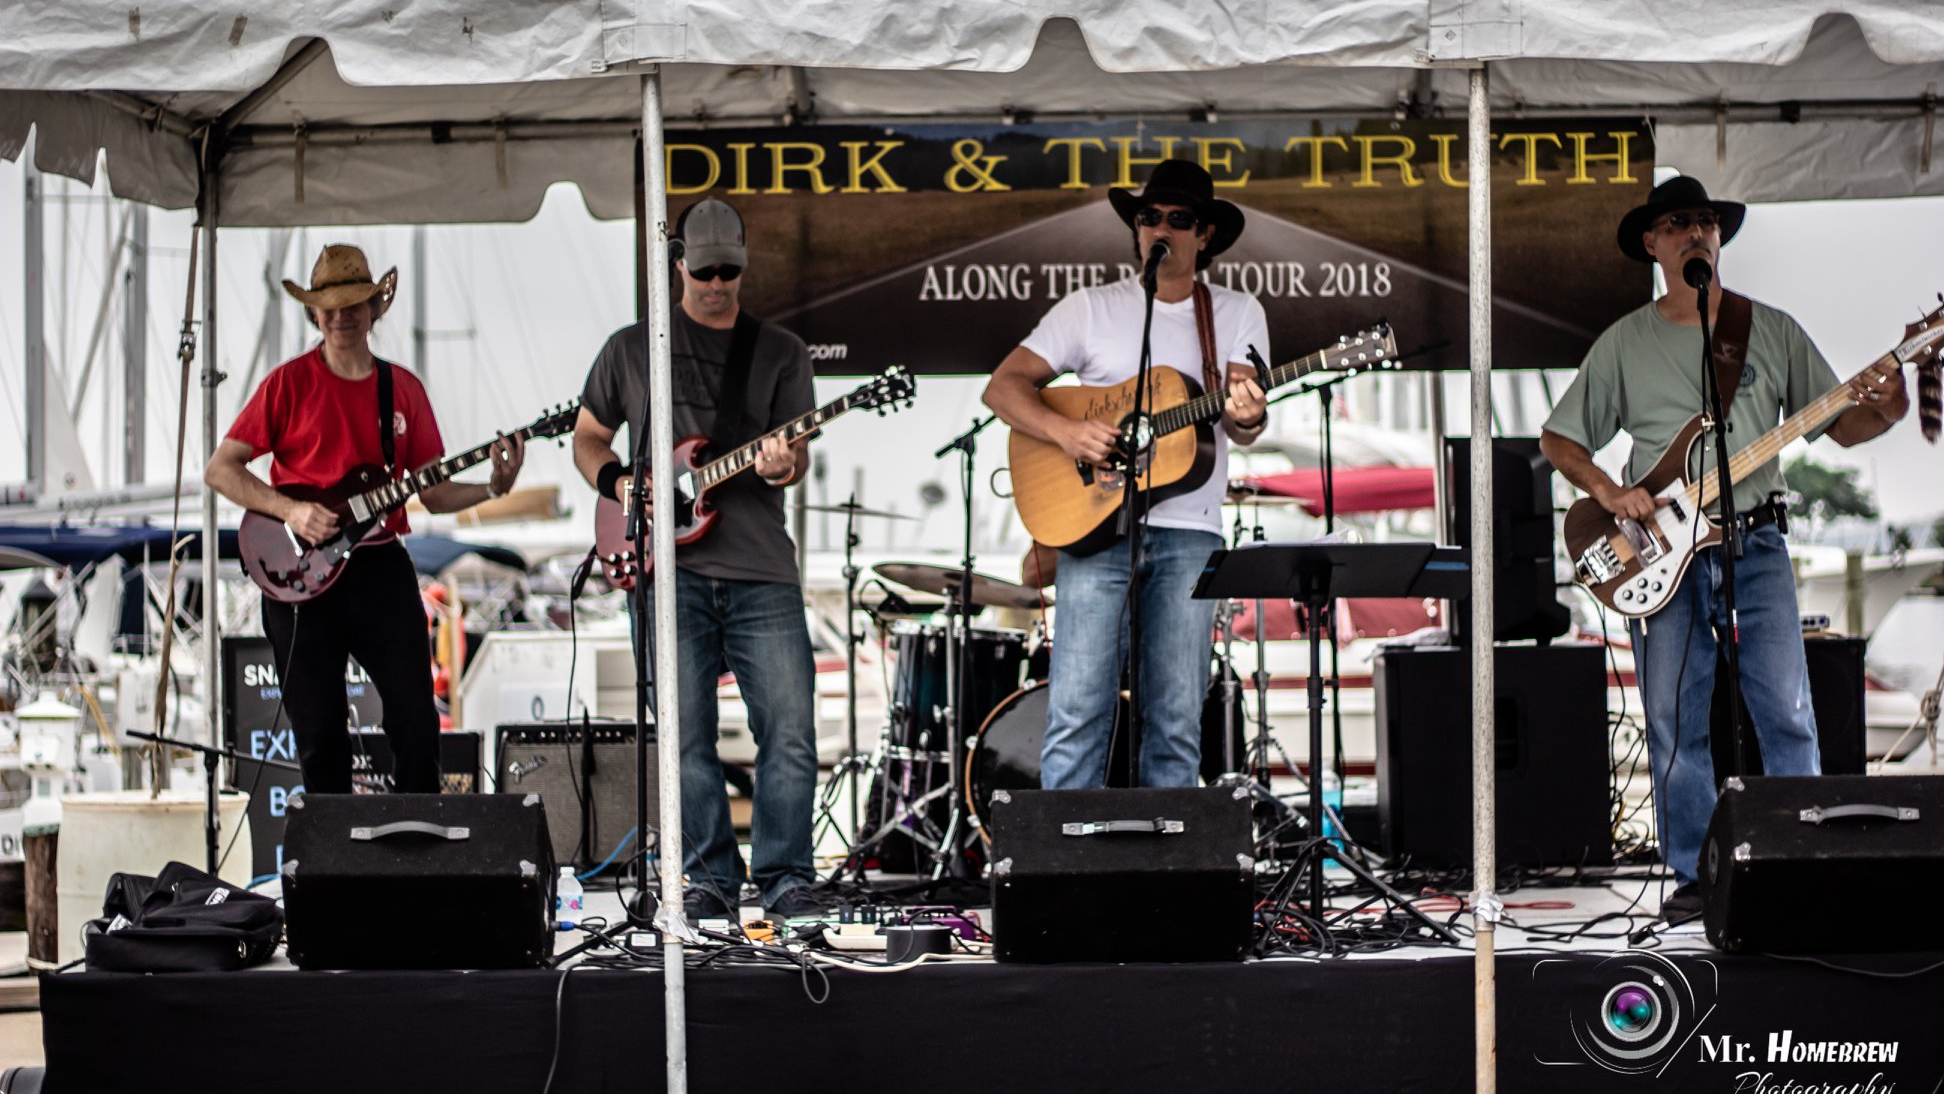 Dirk & The Truth - Live At Eastport A Rocking - Tour Dates 2018